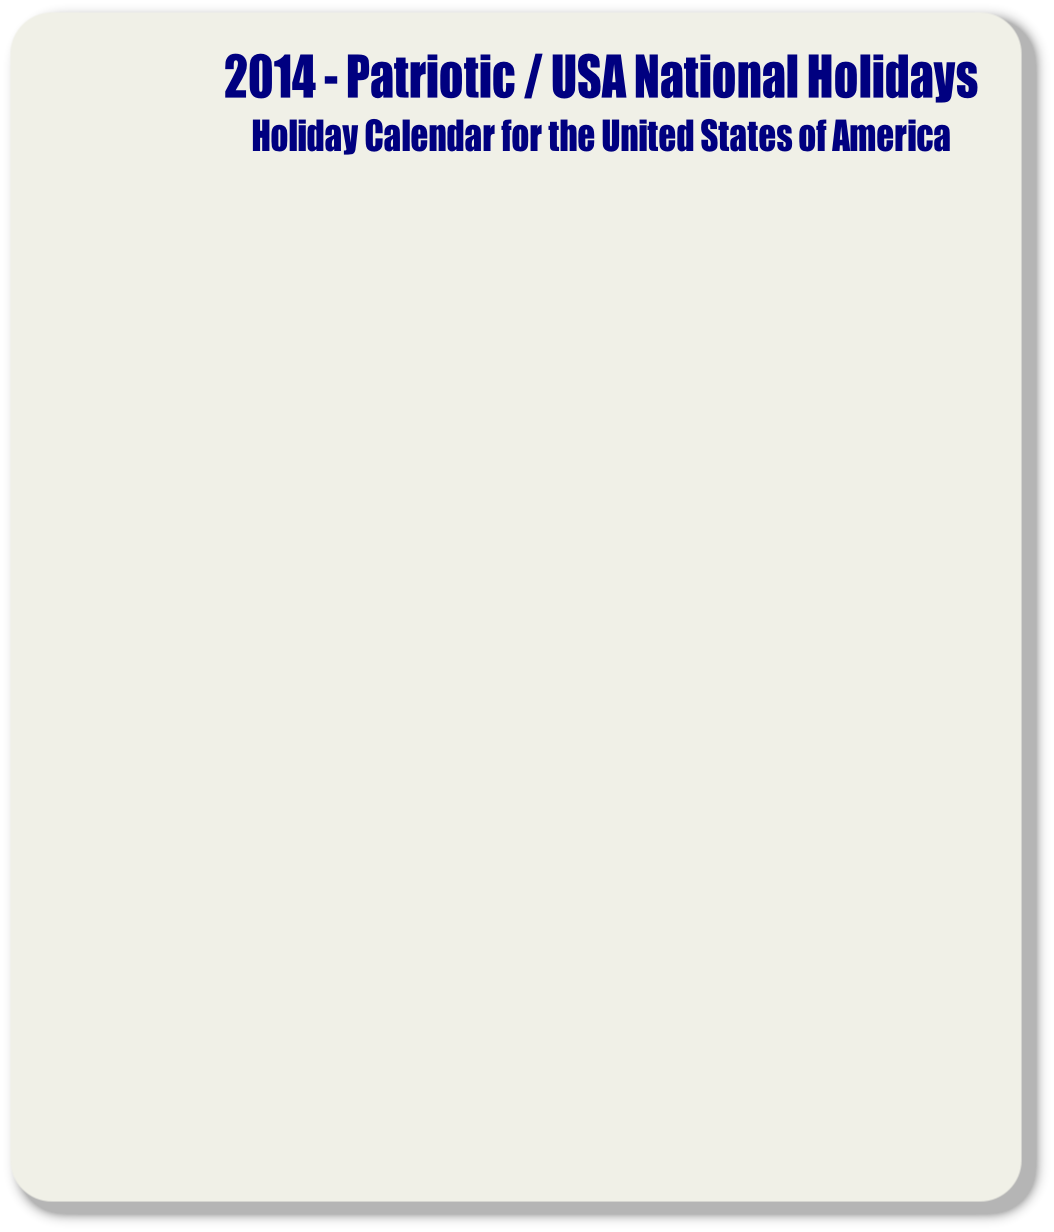 2014 - Patriotic / USA National Holidays